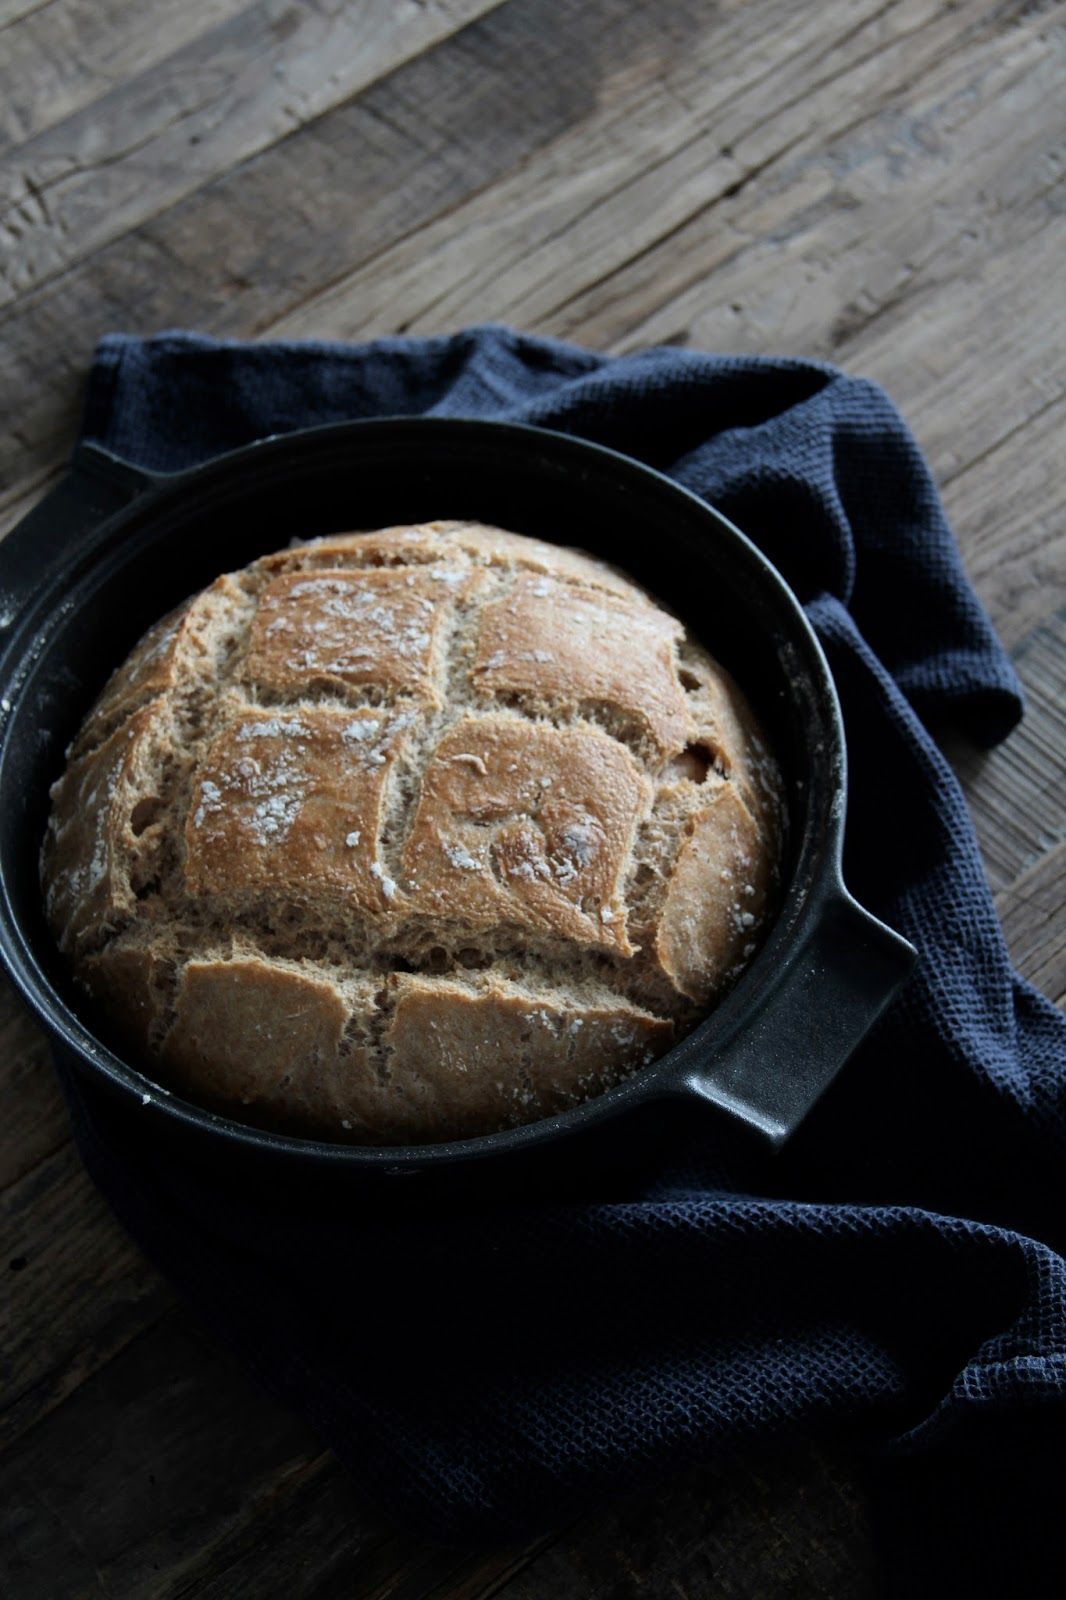 my love of bread is... infinite. bread, butter and salt are basically my essentials. pretty much anything good can happen on a day that starts with good, rustic, home made bread smeared with butter and…